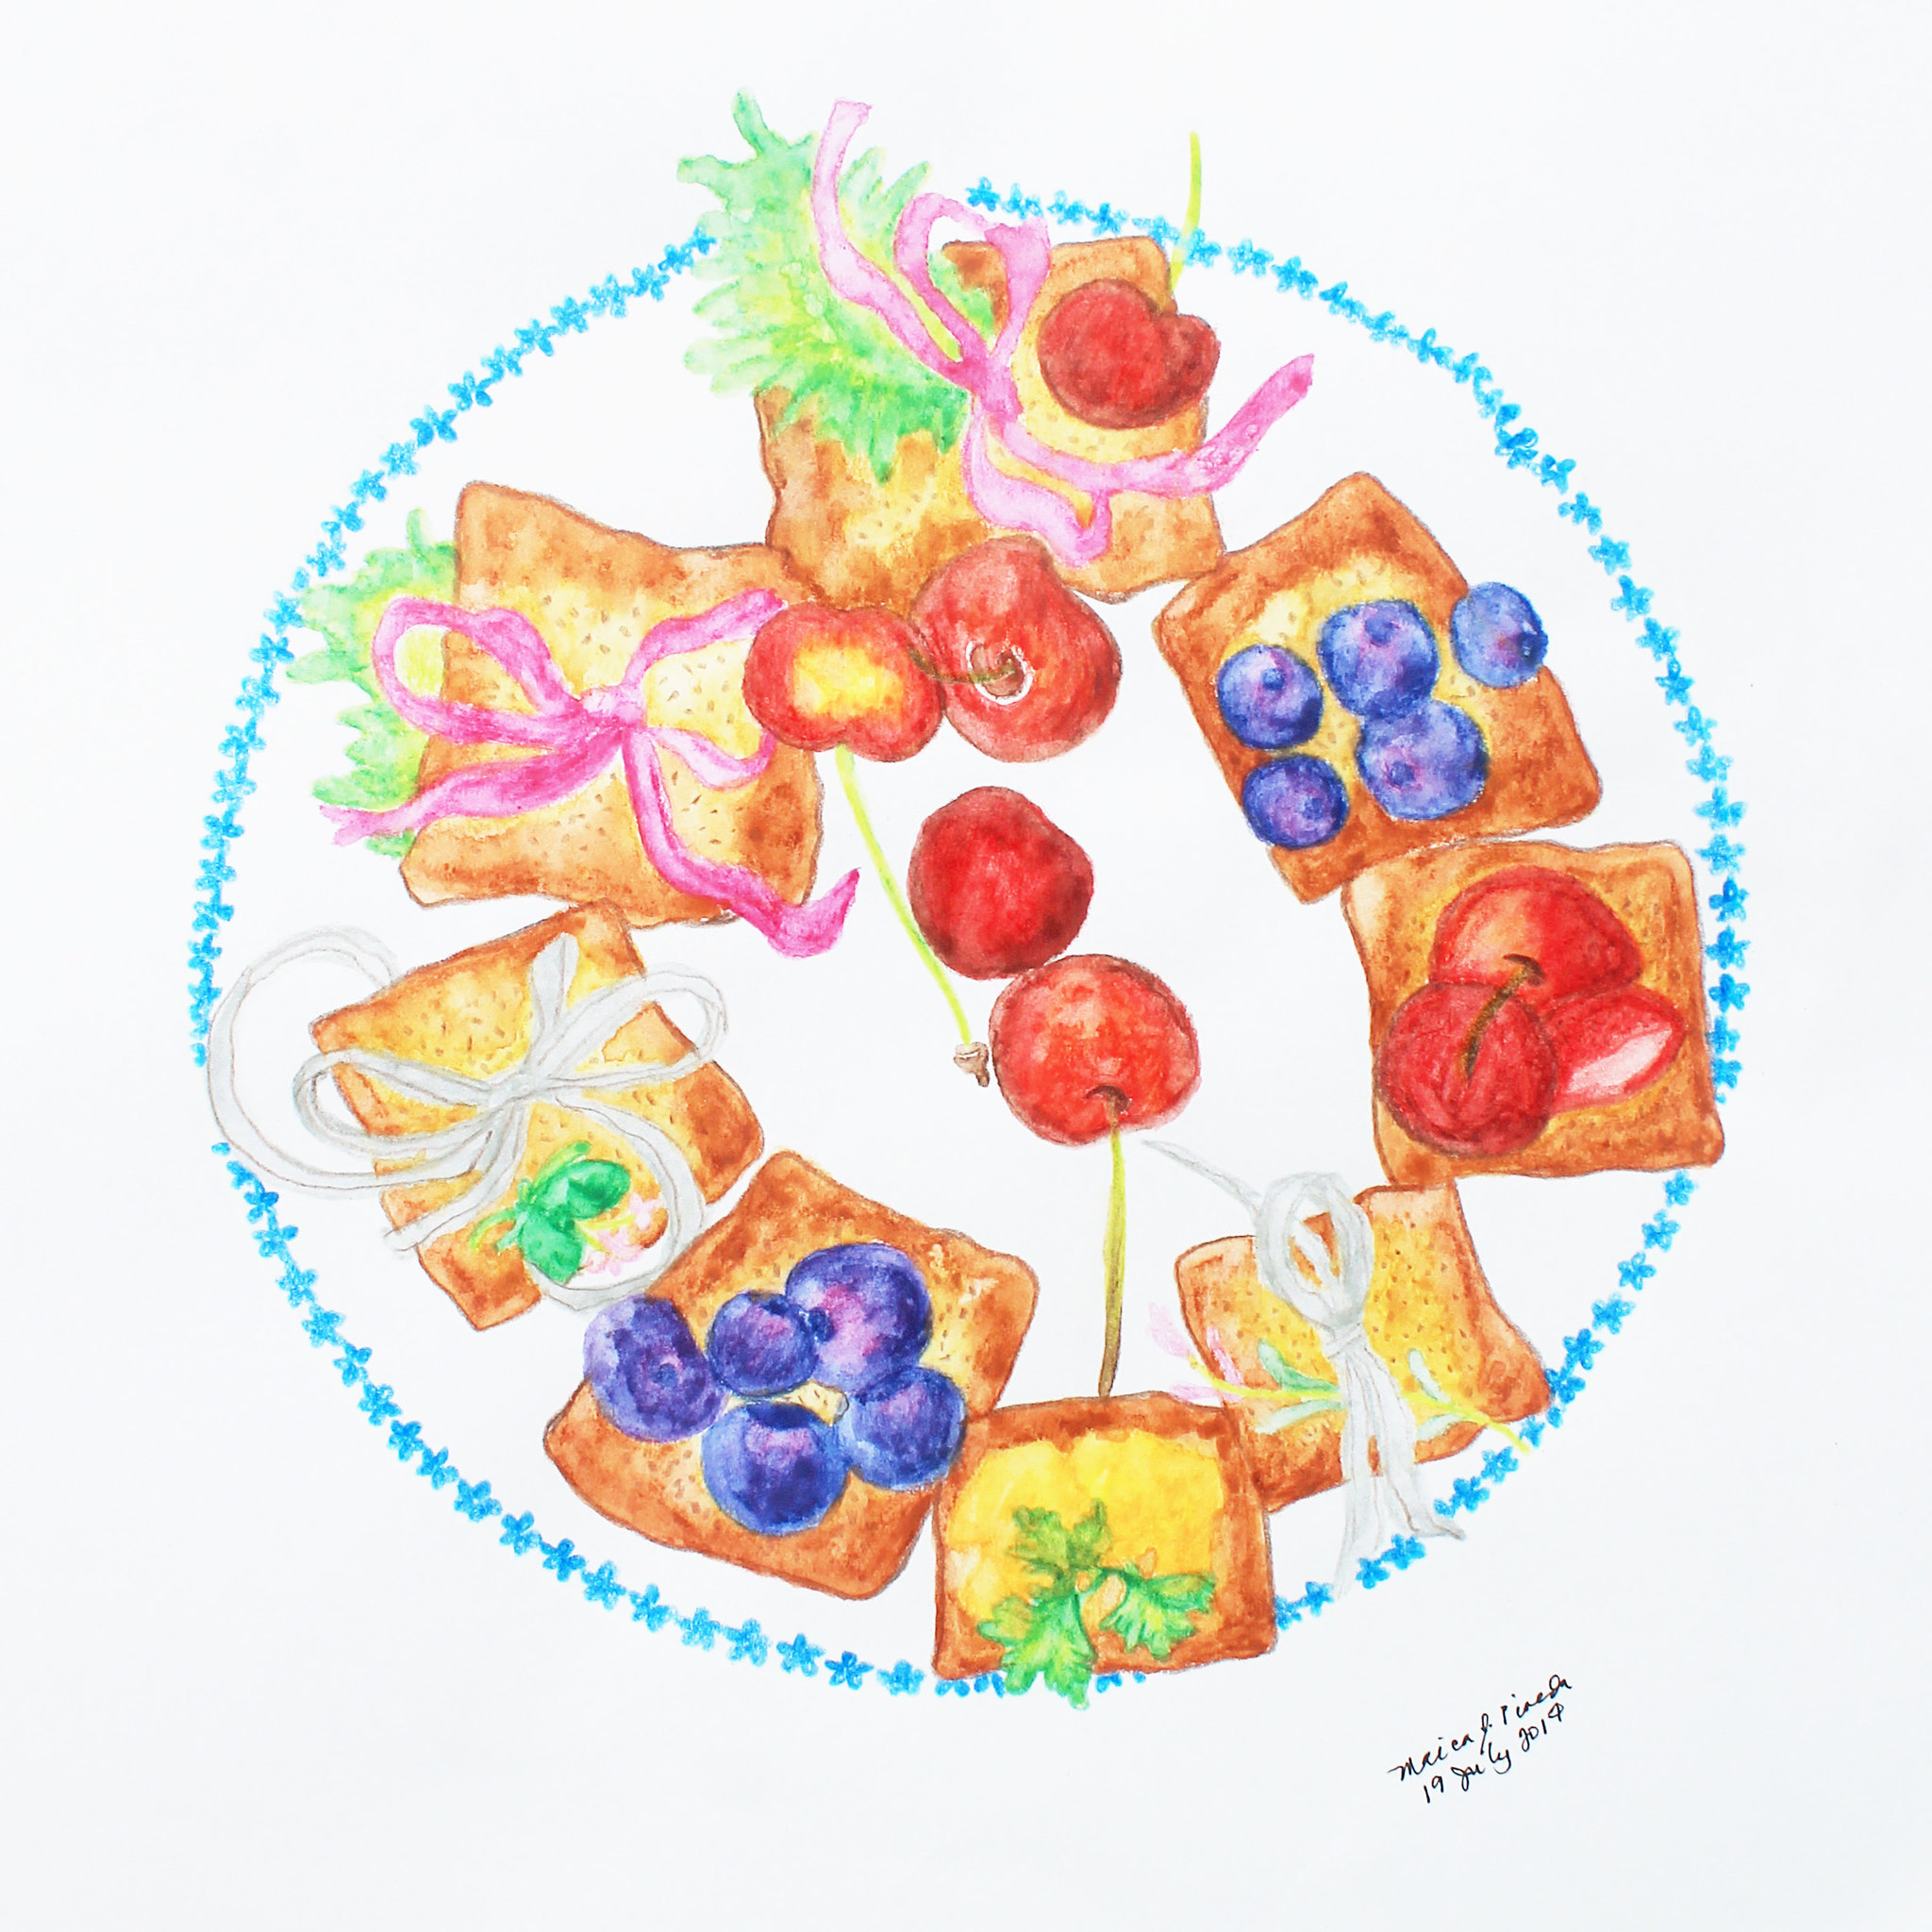 https://www.behance.net/gallery/54918707/Toast-Plate